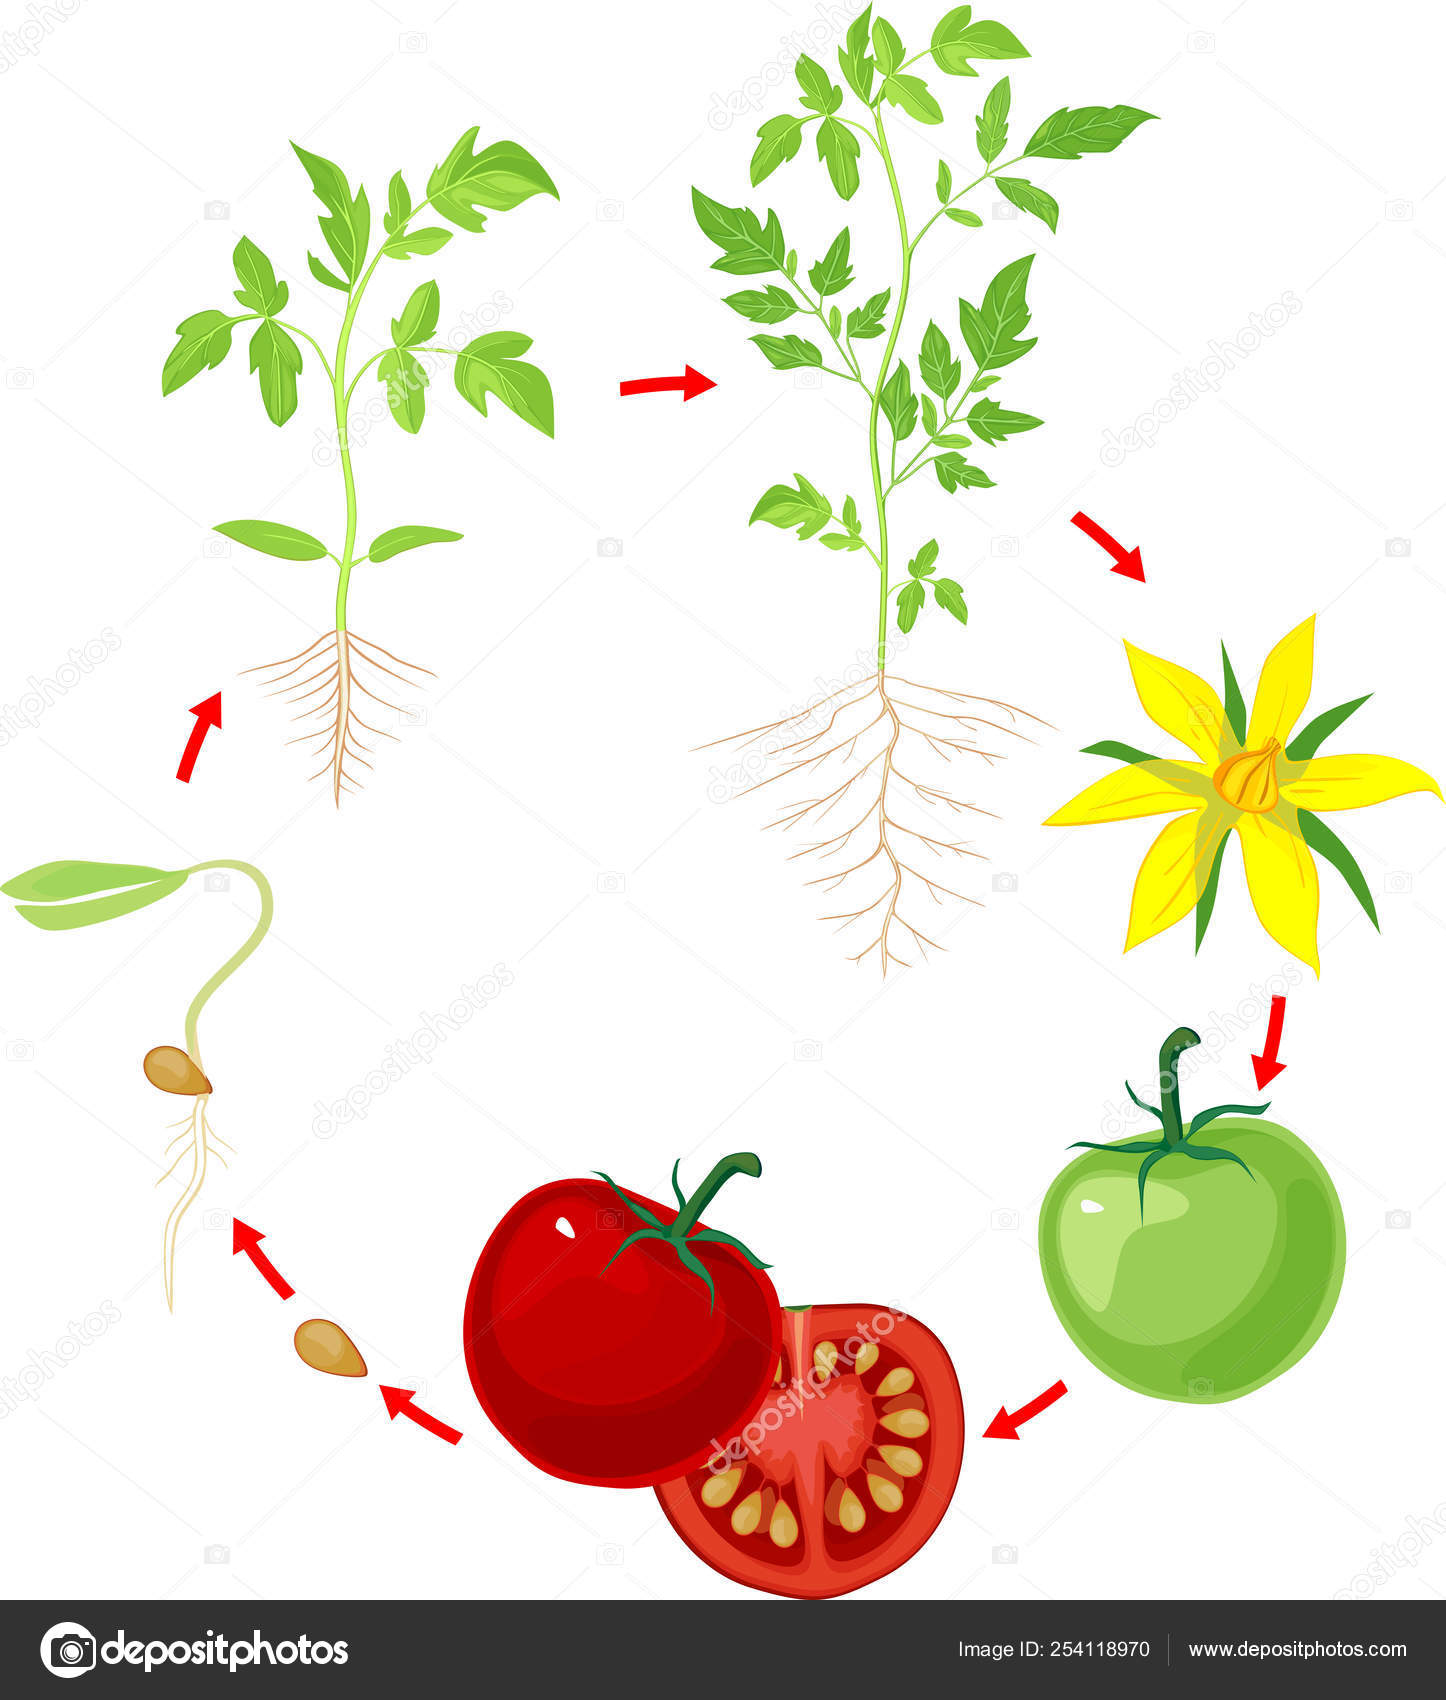 Life Cycle Tomato Plant Stages Growth Seed Sprout Adult